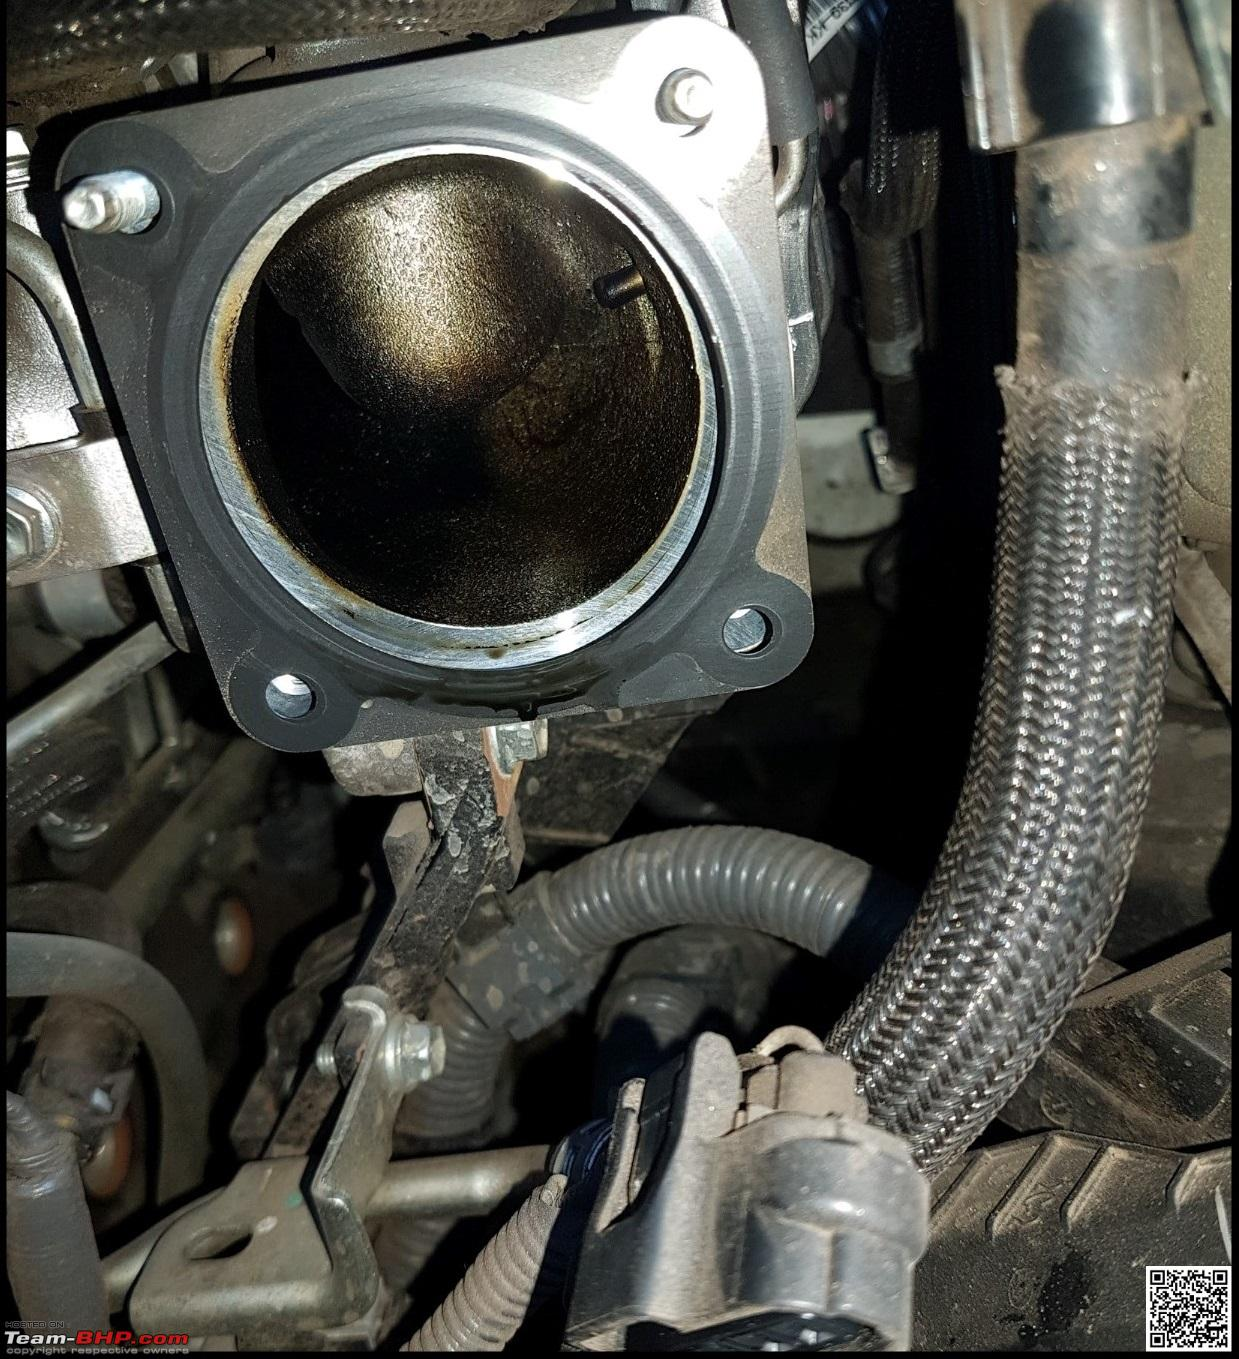 Explained: Why Diesel engines need a throttle body